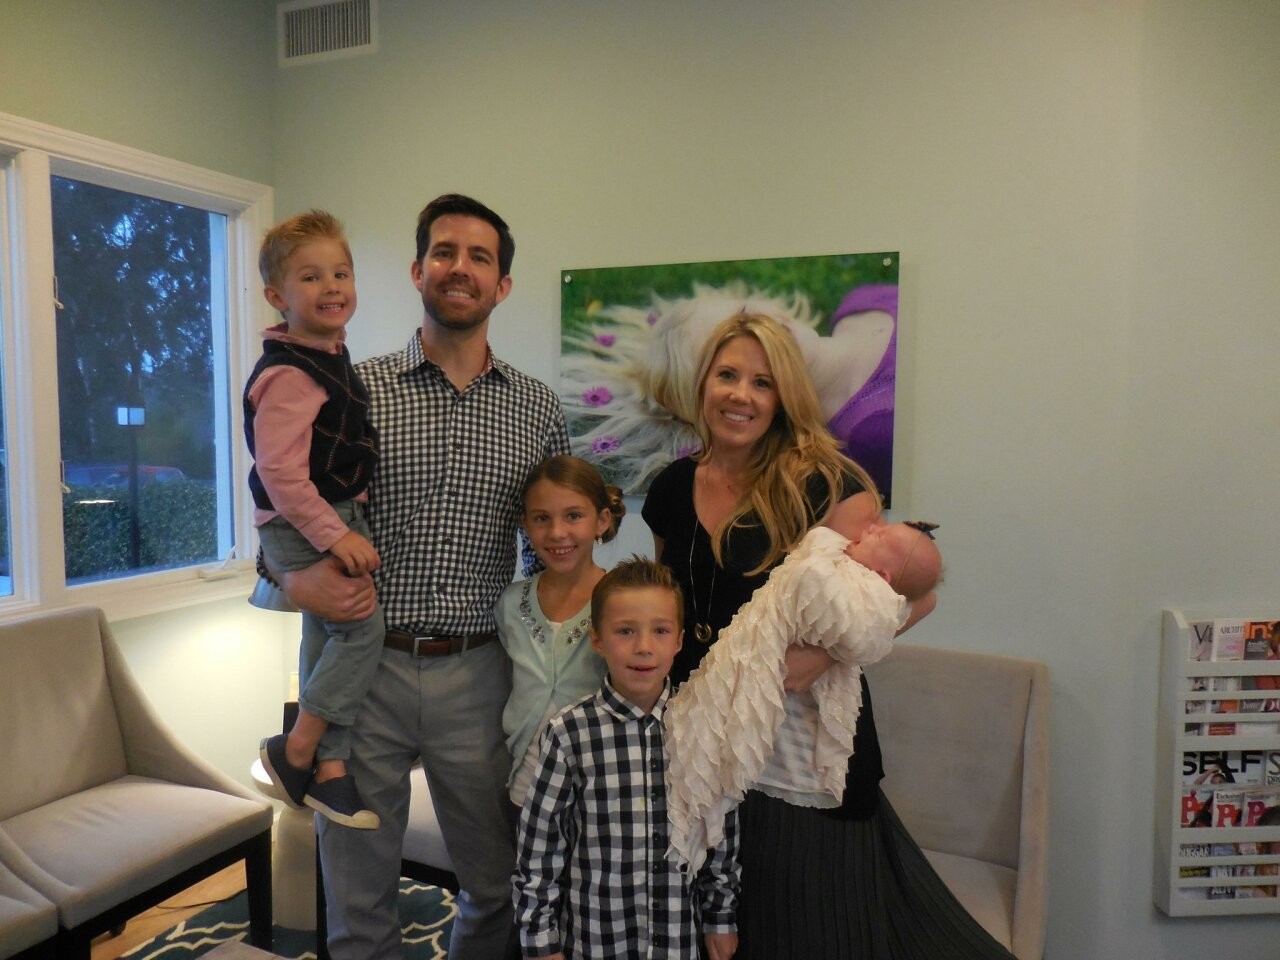 Dr. Weston Spencer and his wife Ashley Spencer with their four children.